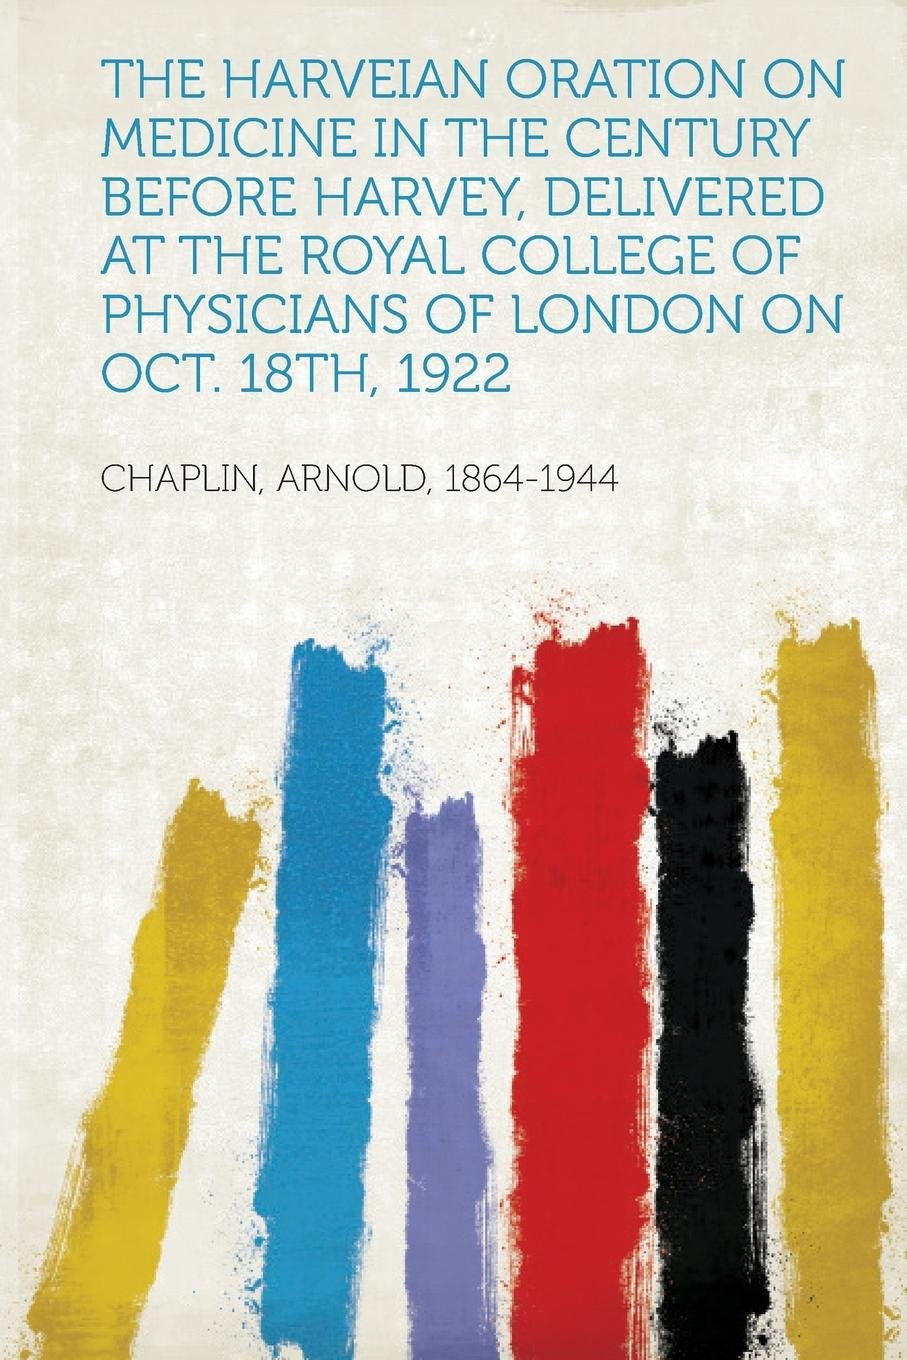 Download The Harveian Oration on Medicine in the Century Before Harvey, Delivered at the Royal College of Physicians of London on Oct. 18th, 1922 PDF